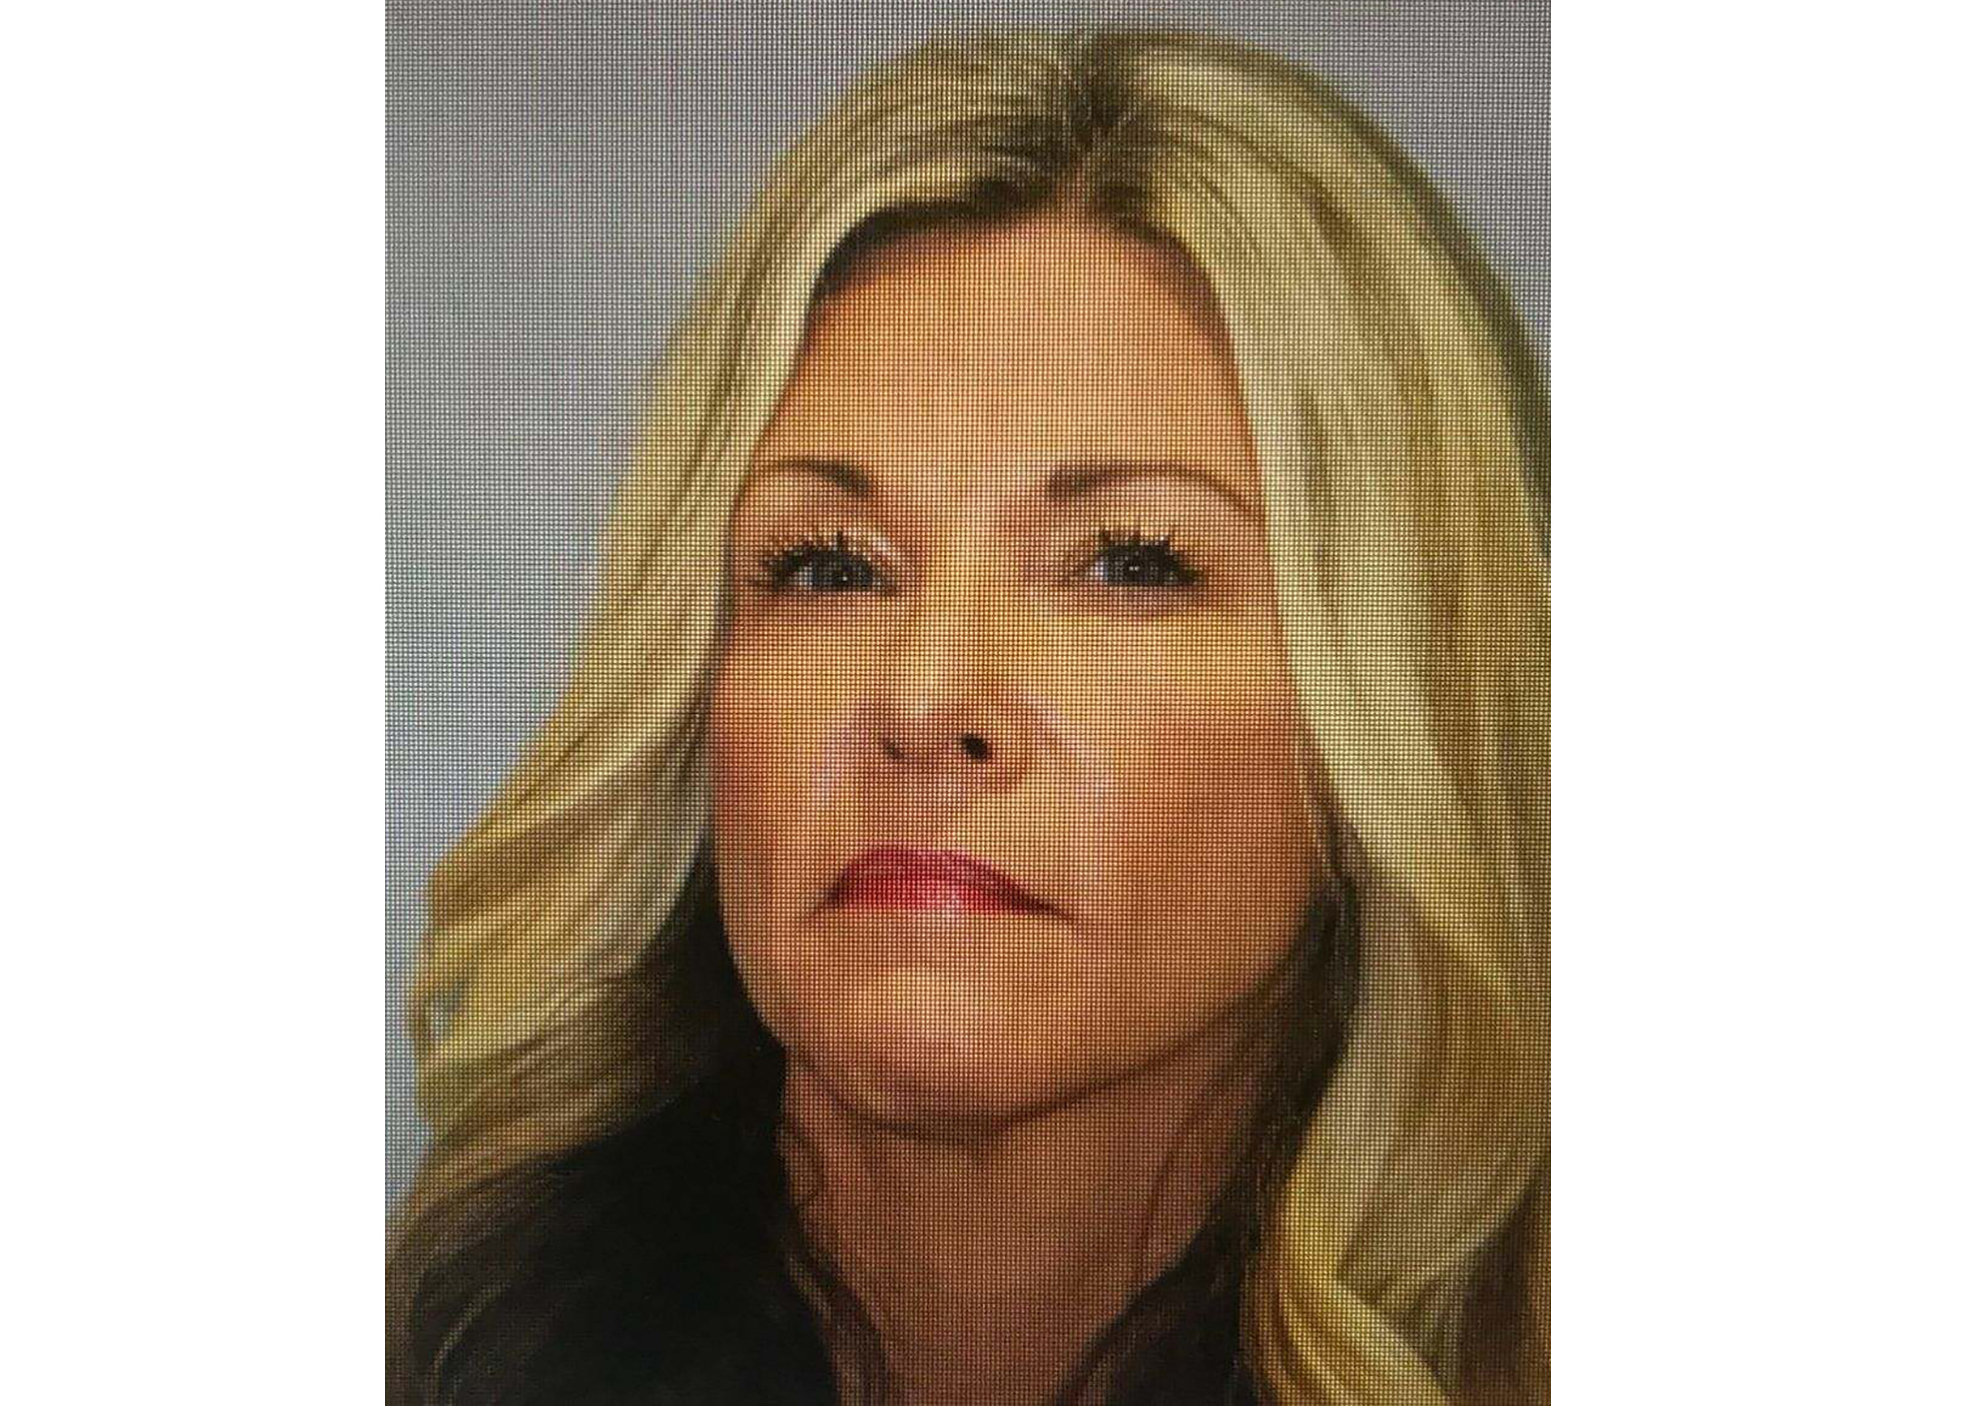 An image provided by the Kauai Police Department shows Lori Vallow.